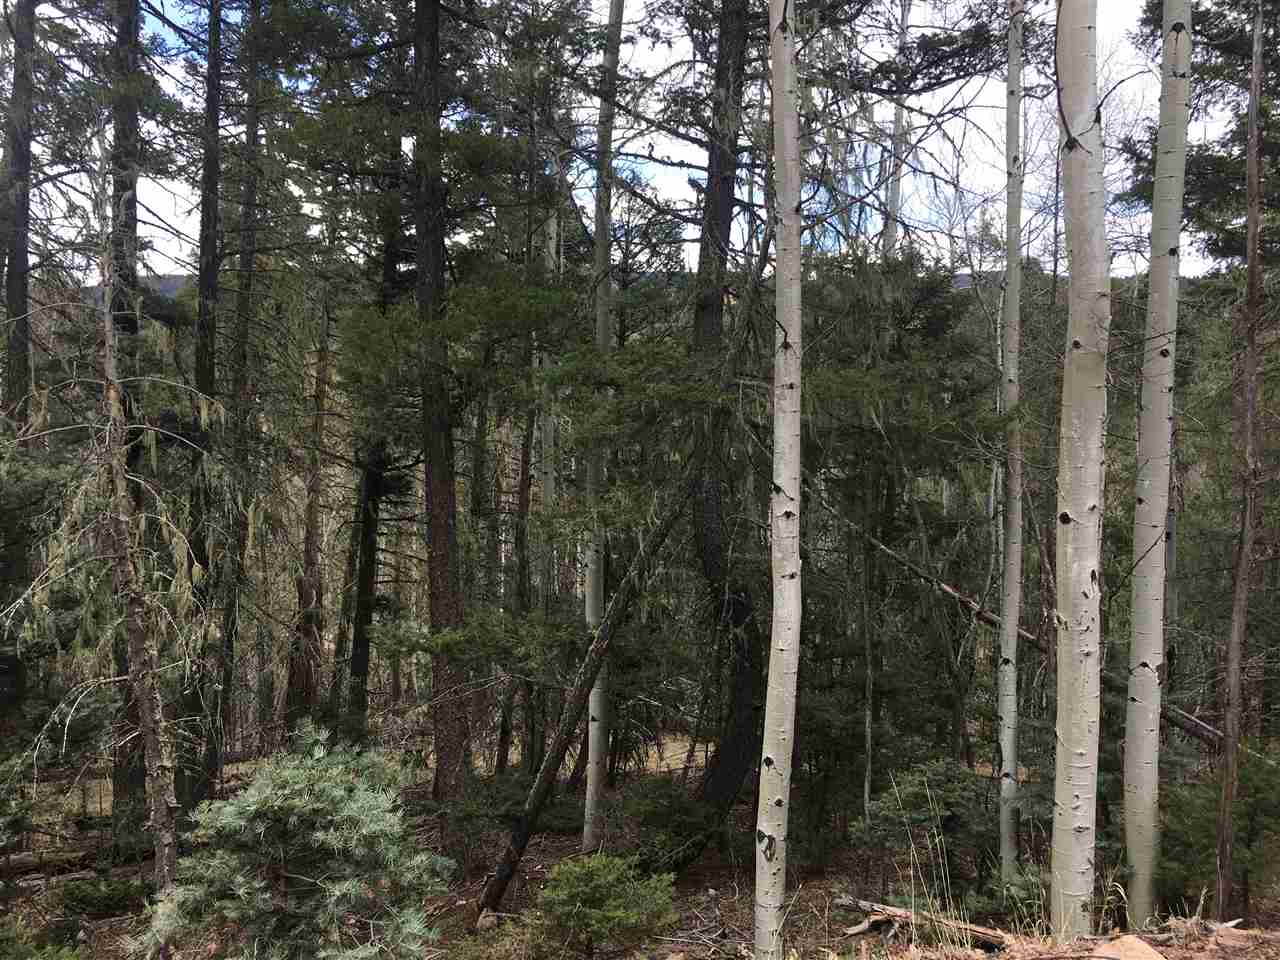 Walking distance to lake, trails, fishing and more! Owner has two adjoining lots for sale - buy one or both for a great parcel of land to build your dream mountain home on.